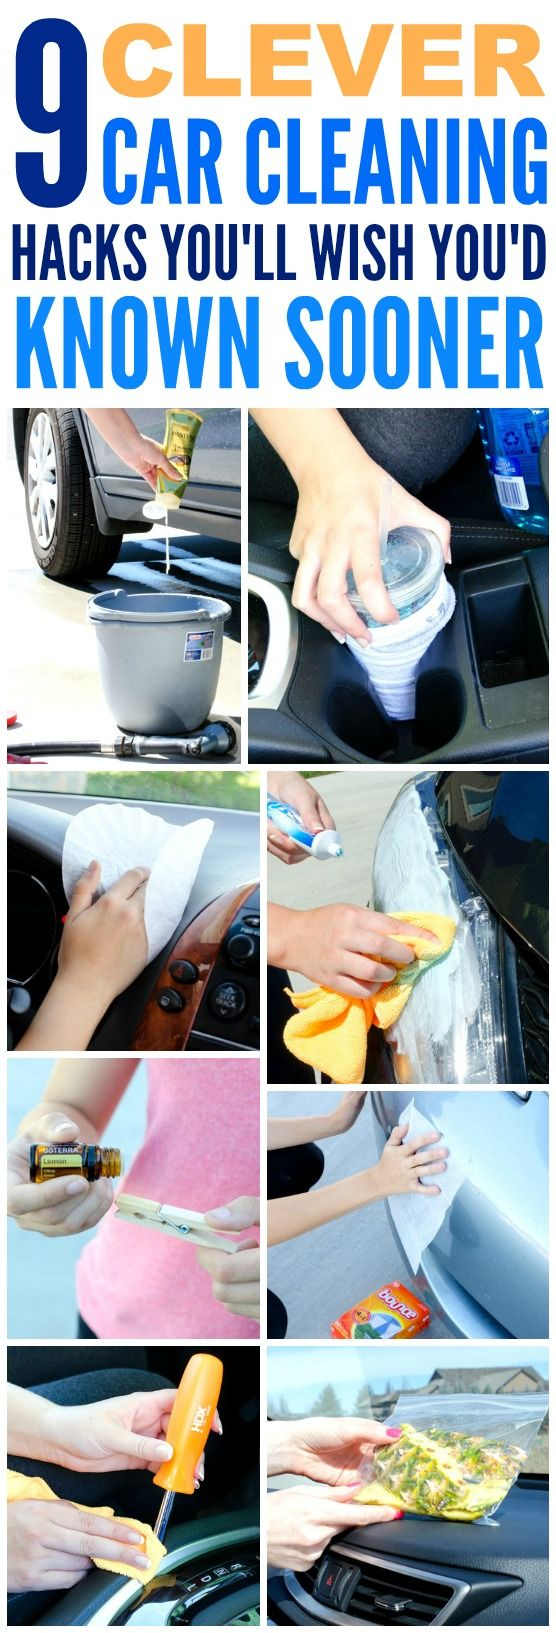 56 Car Cleaning Hacks You'll Wish You'd Known Sooner